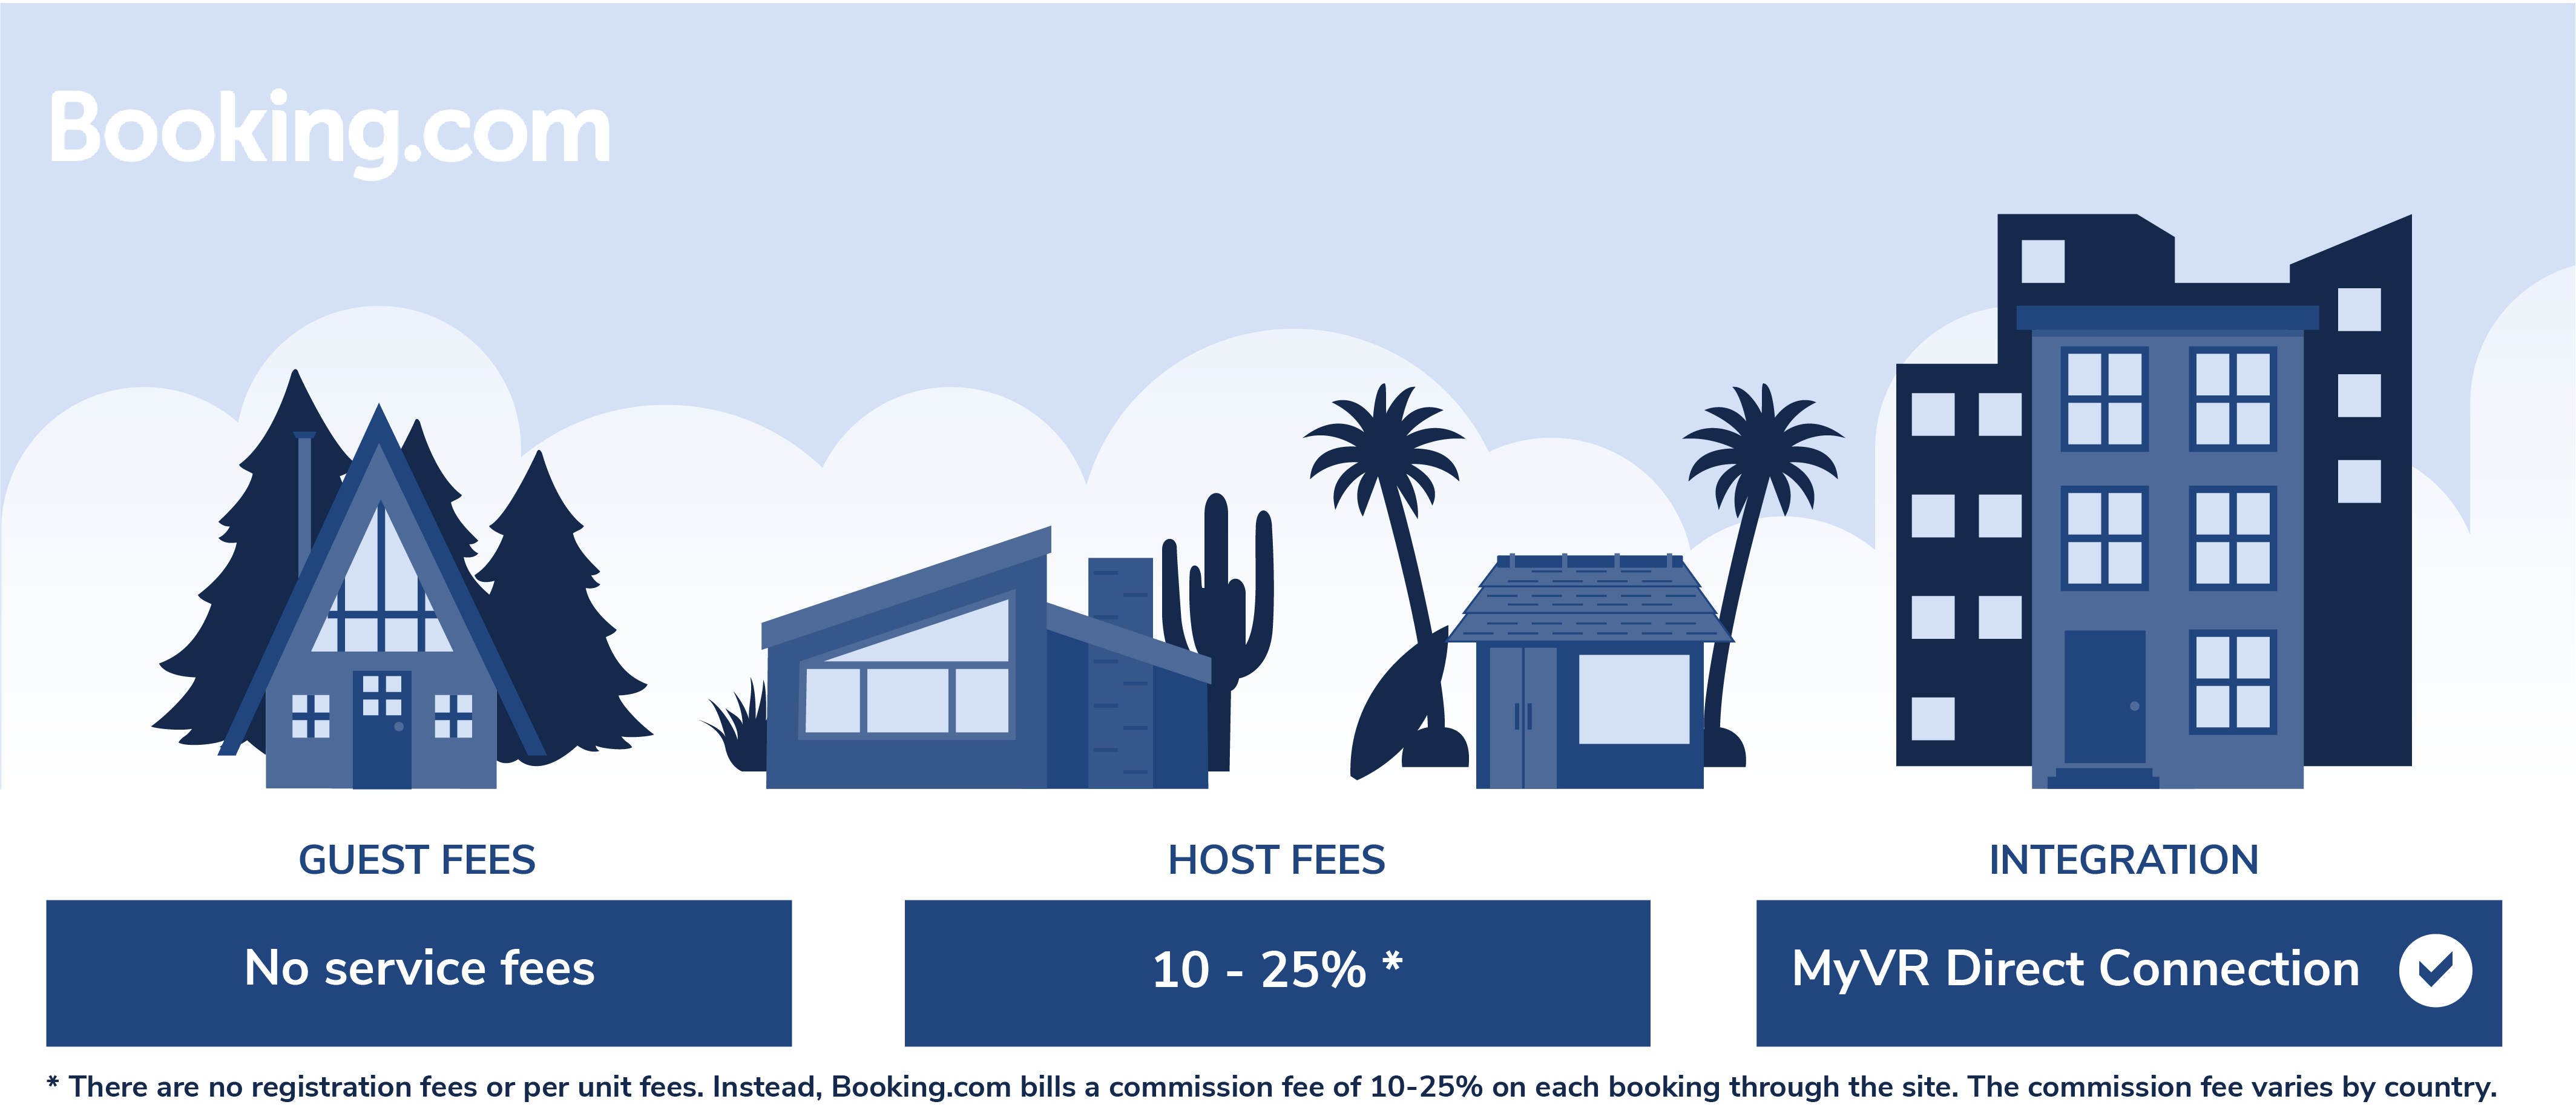 Booking.com Host Fees, Guest Fees - MyVR